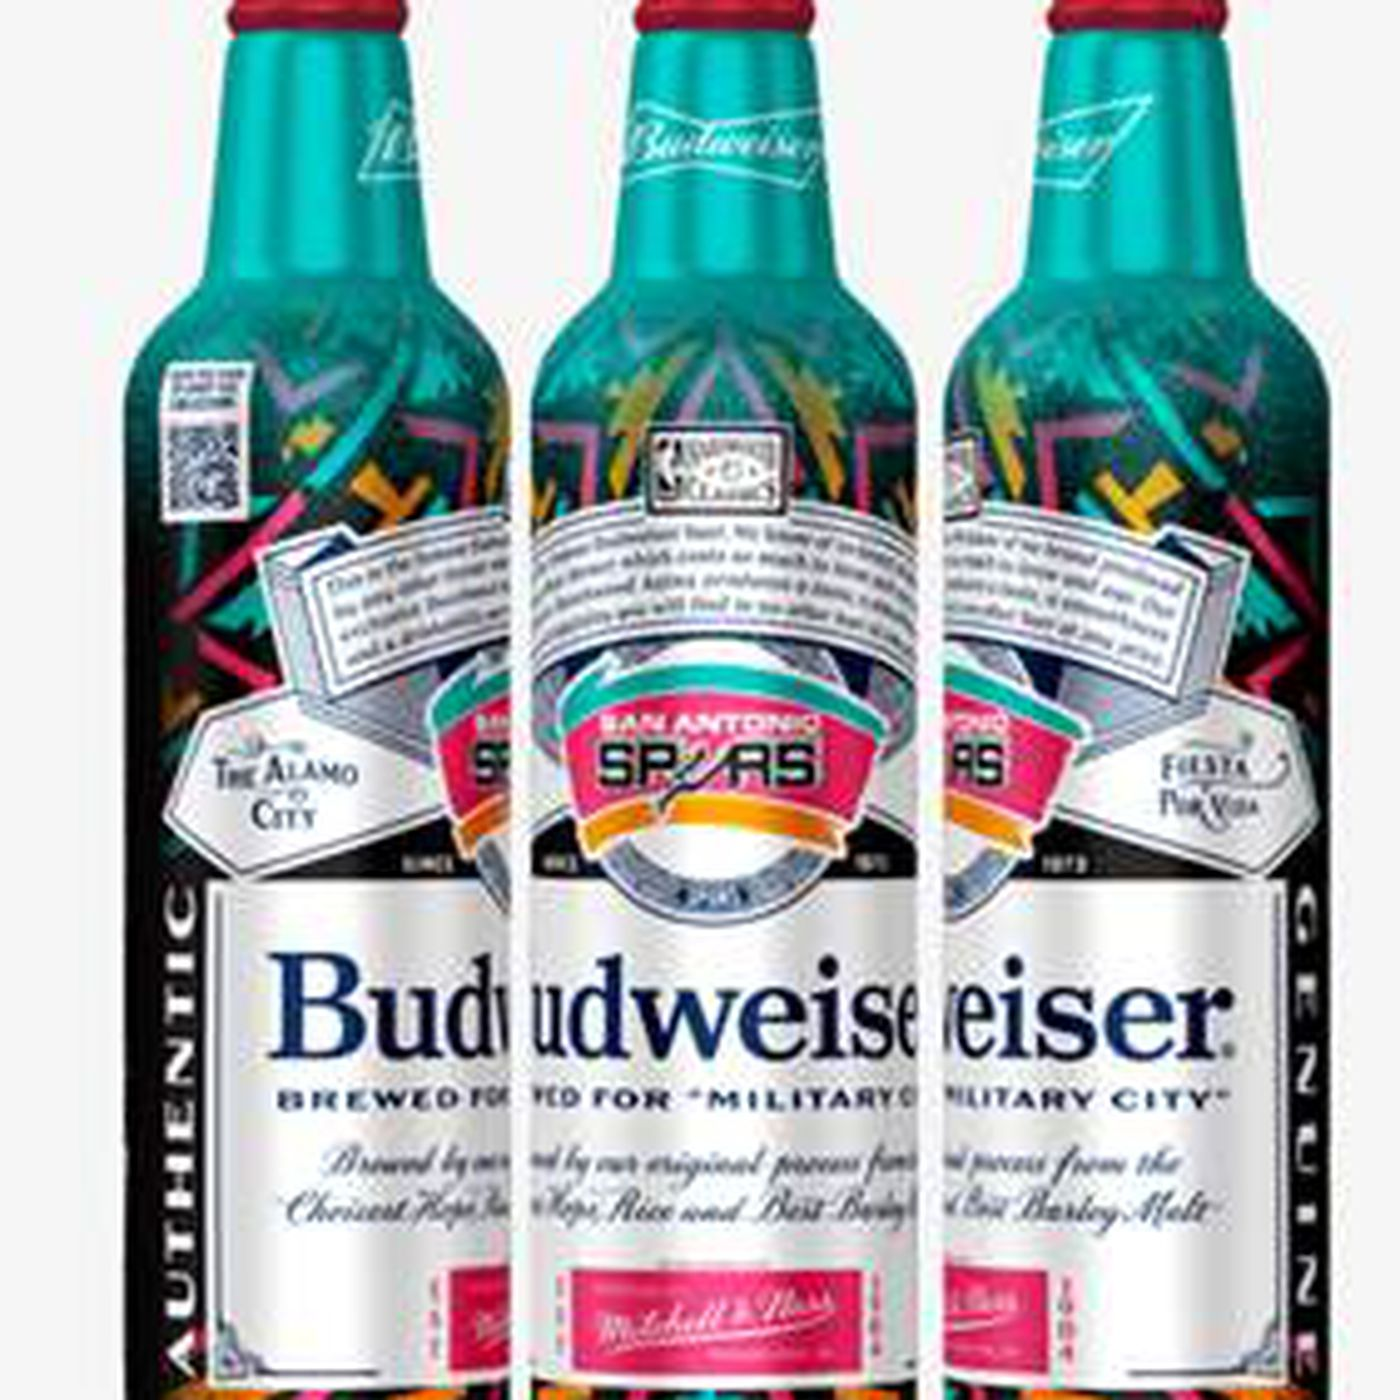 Budweiser launches Spurs-themed packaging - Pounding The Rock